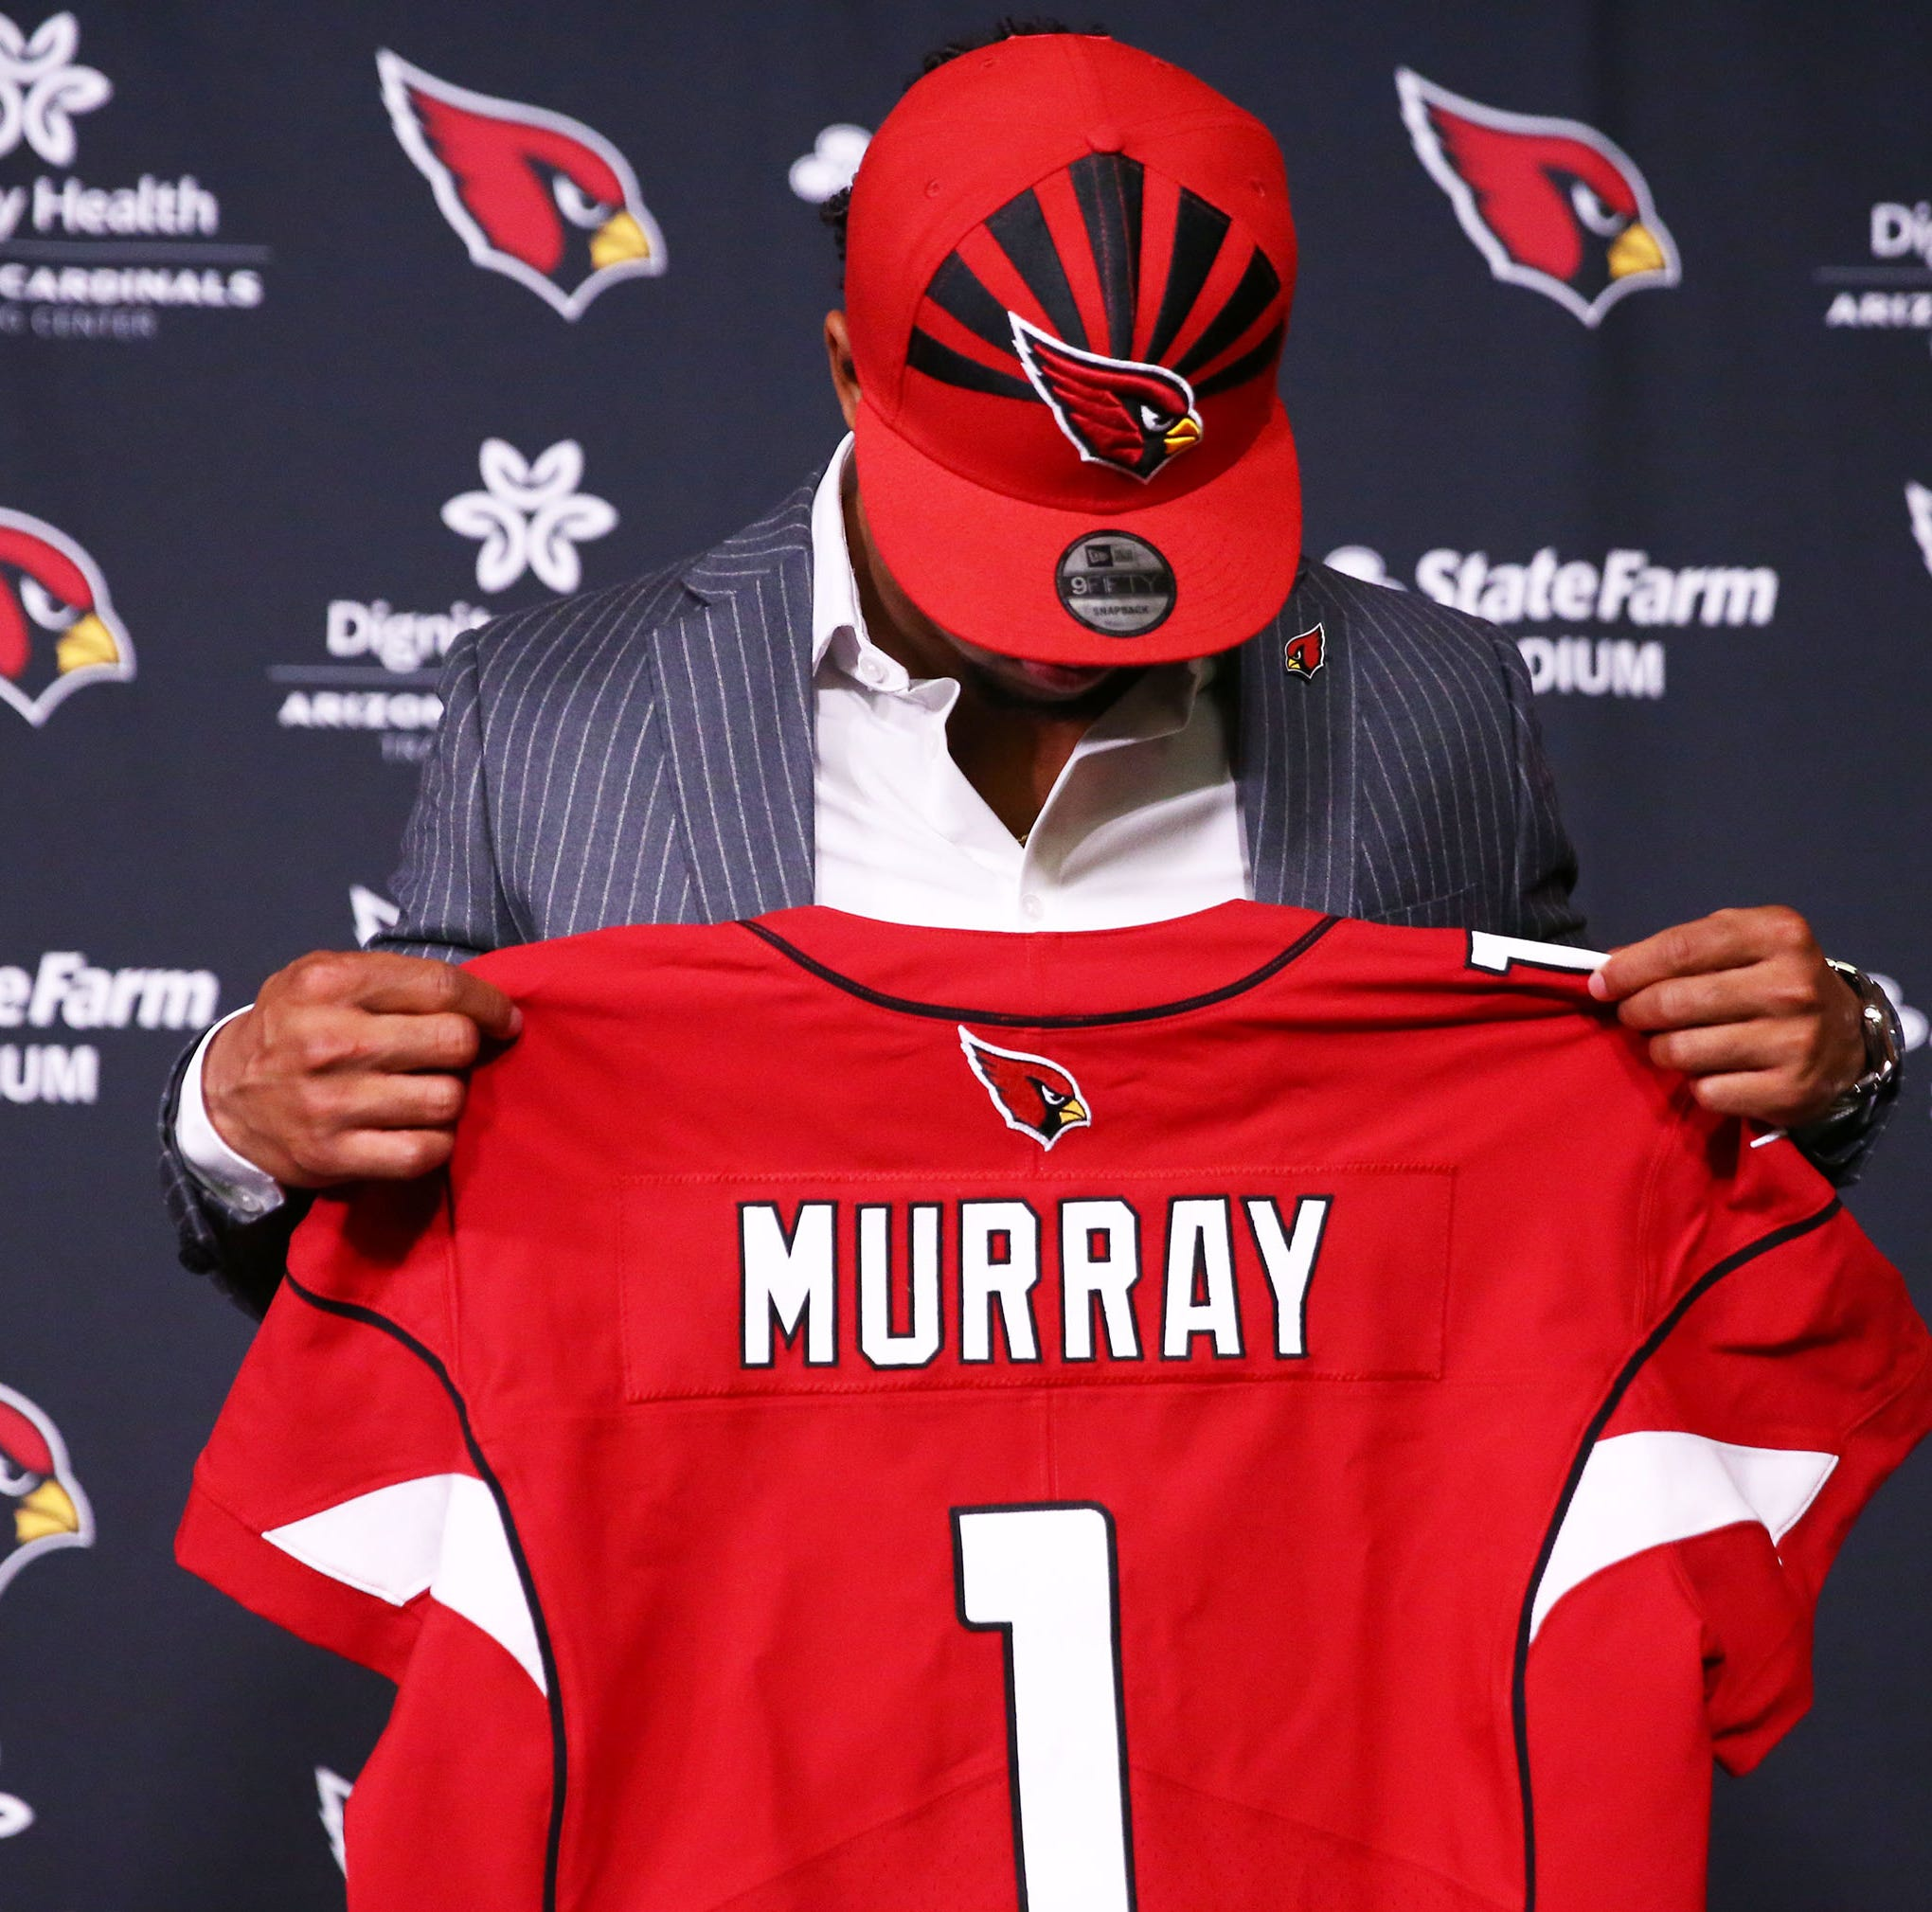 Arizona Cardinals are still trying to recover from their previous bad drafts